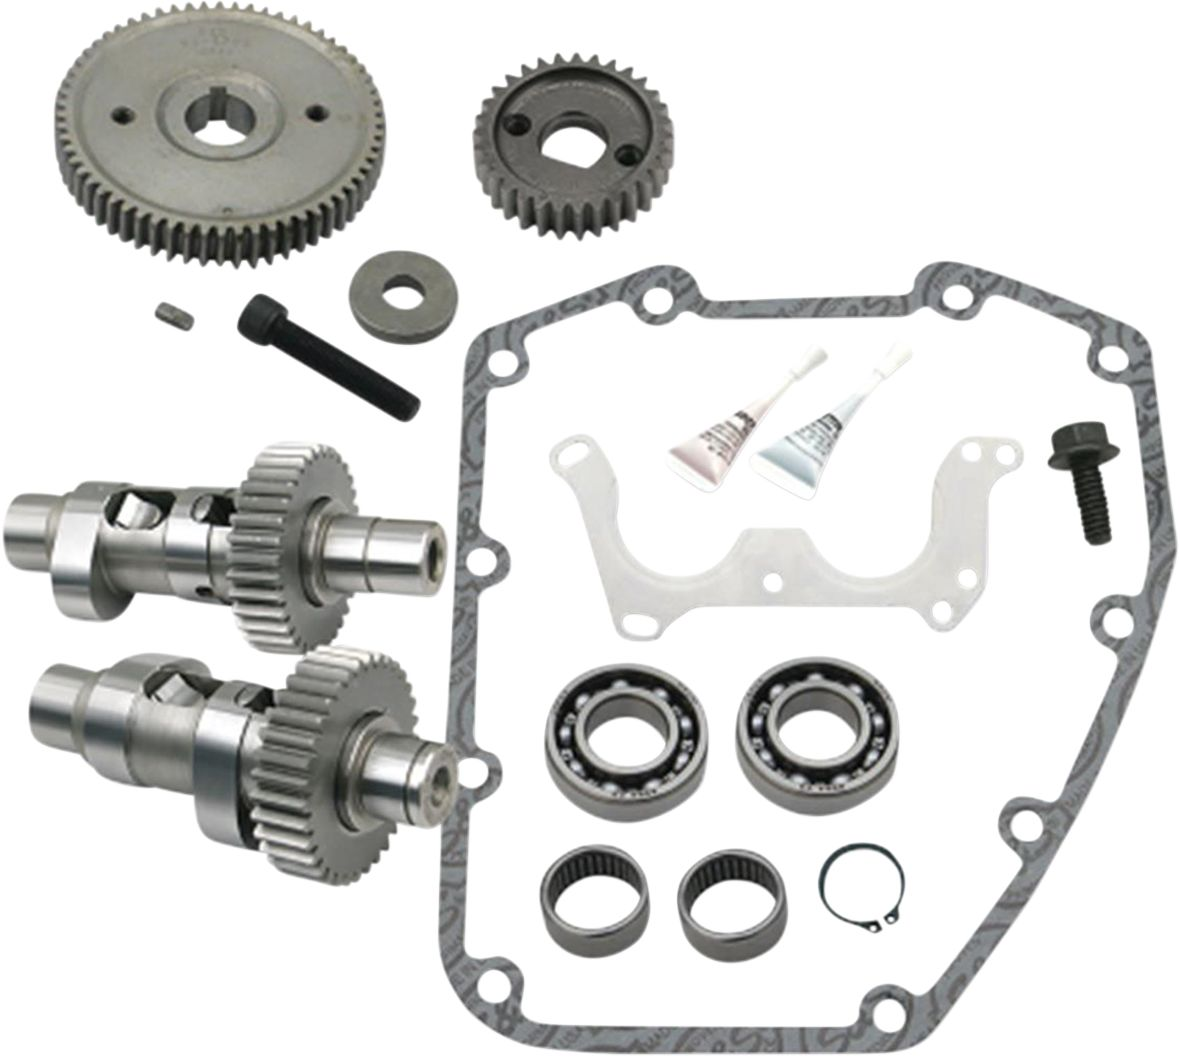 09251099 - S&S CAMS 510G W/PLATE 99-06